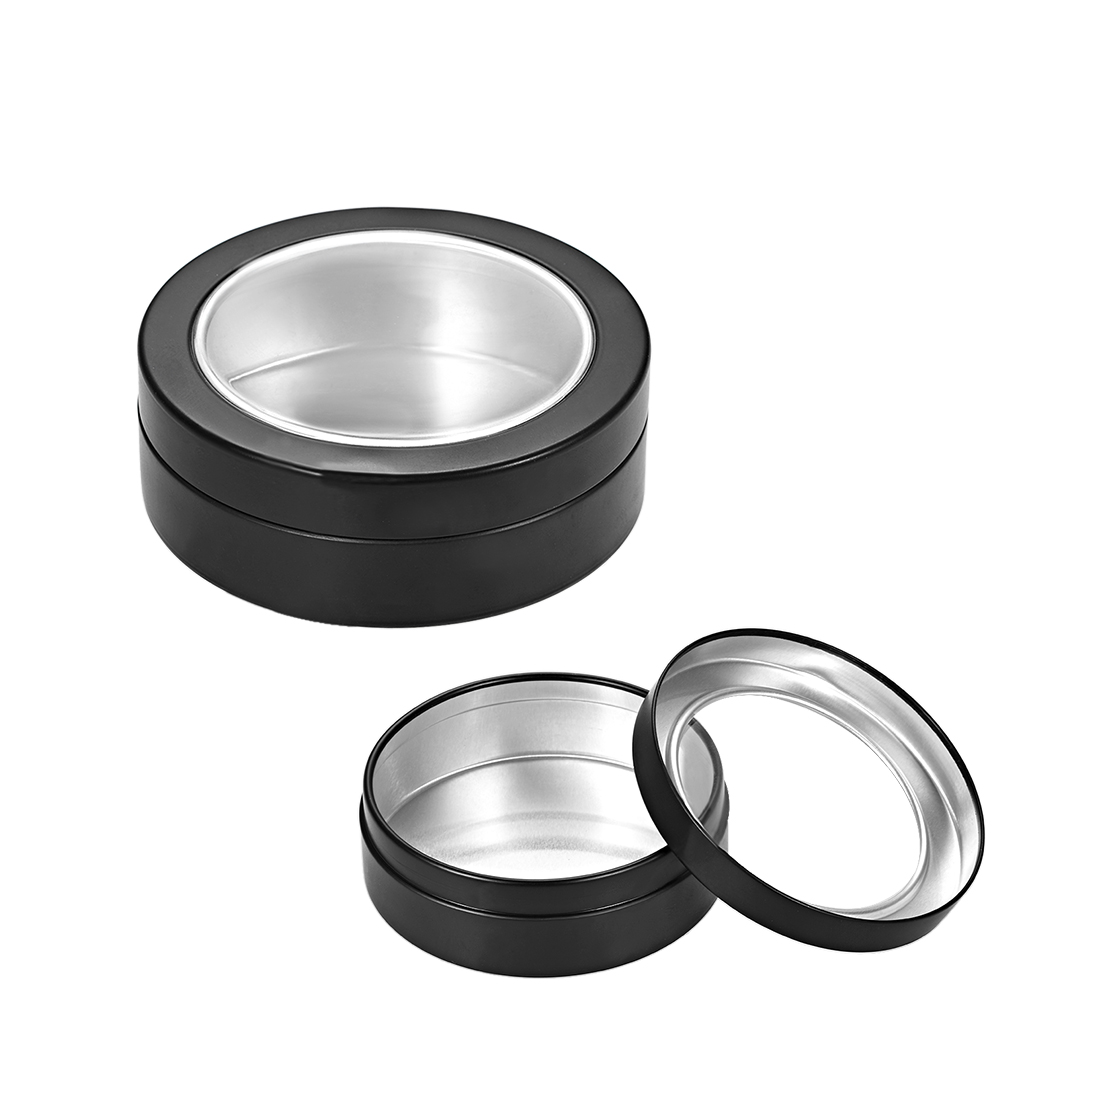 3.4oz Round Clear Window Aluminum Cans Tin Lid Containers 100ml Black 6pcs